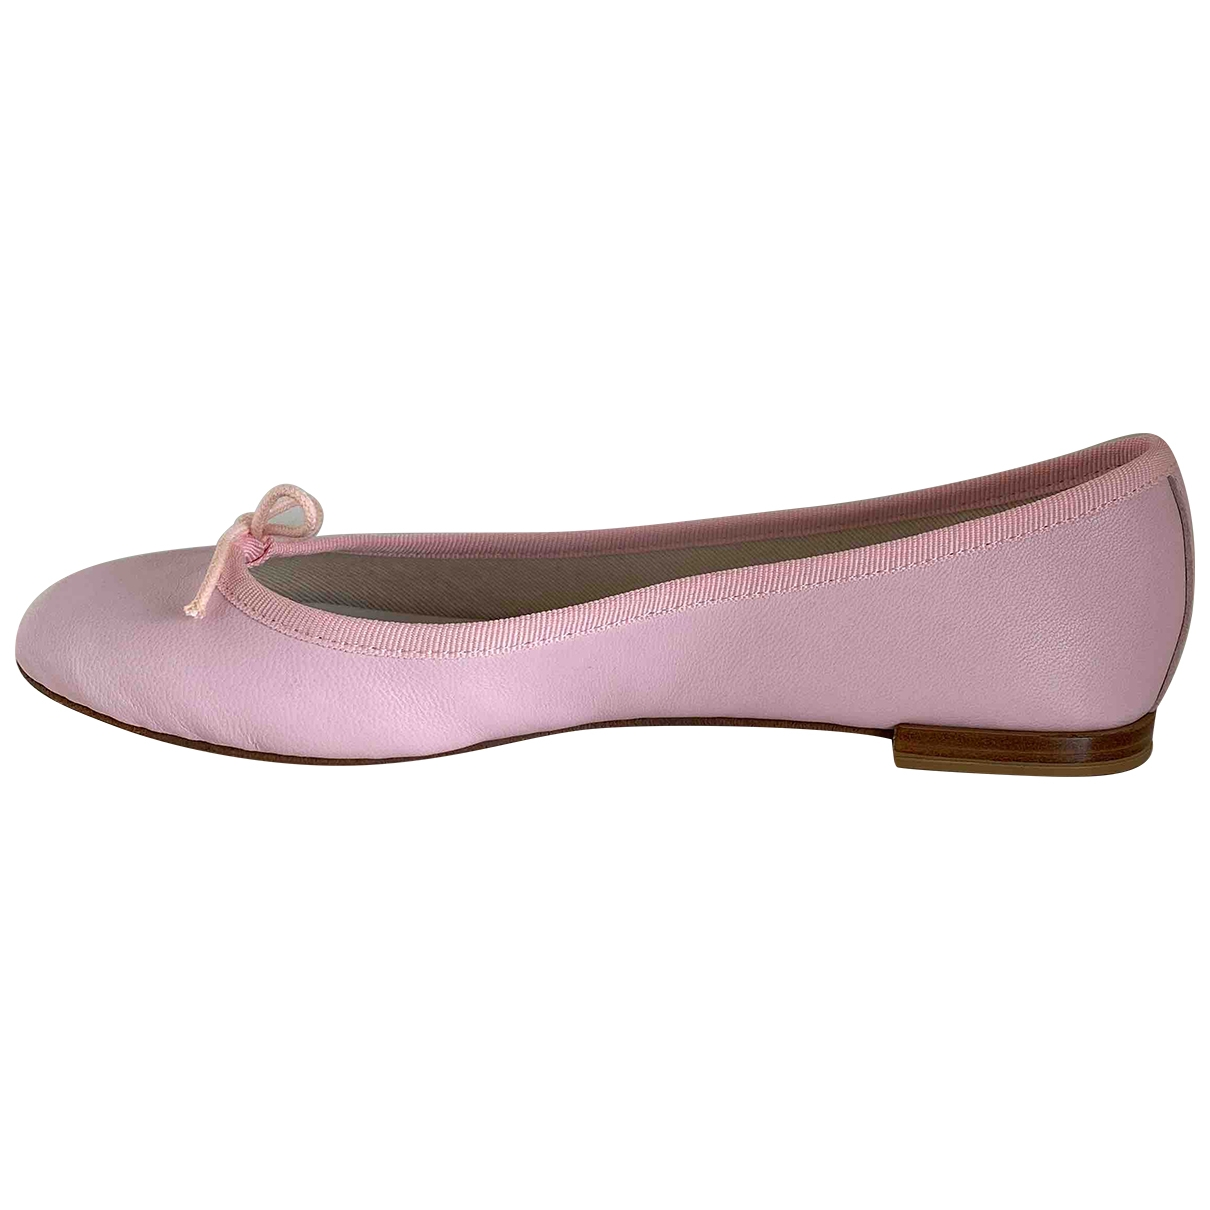 Repetto \N Pink Leather Ballet flats for Women 38 EU